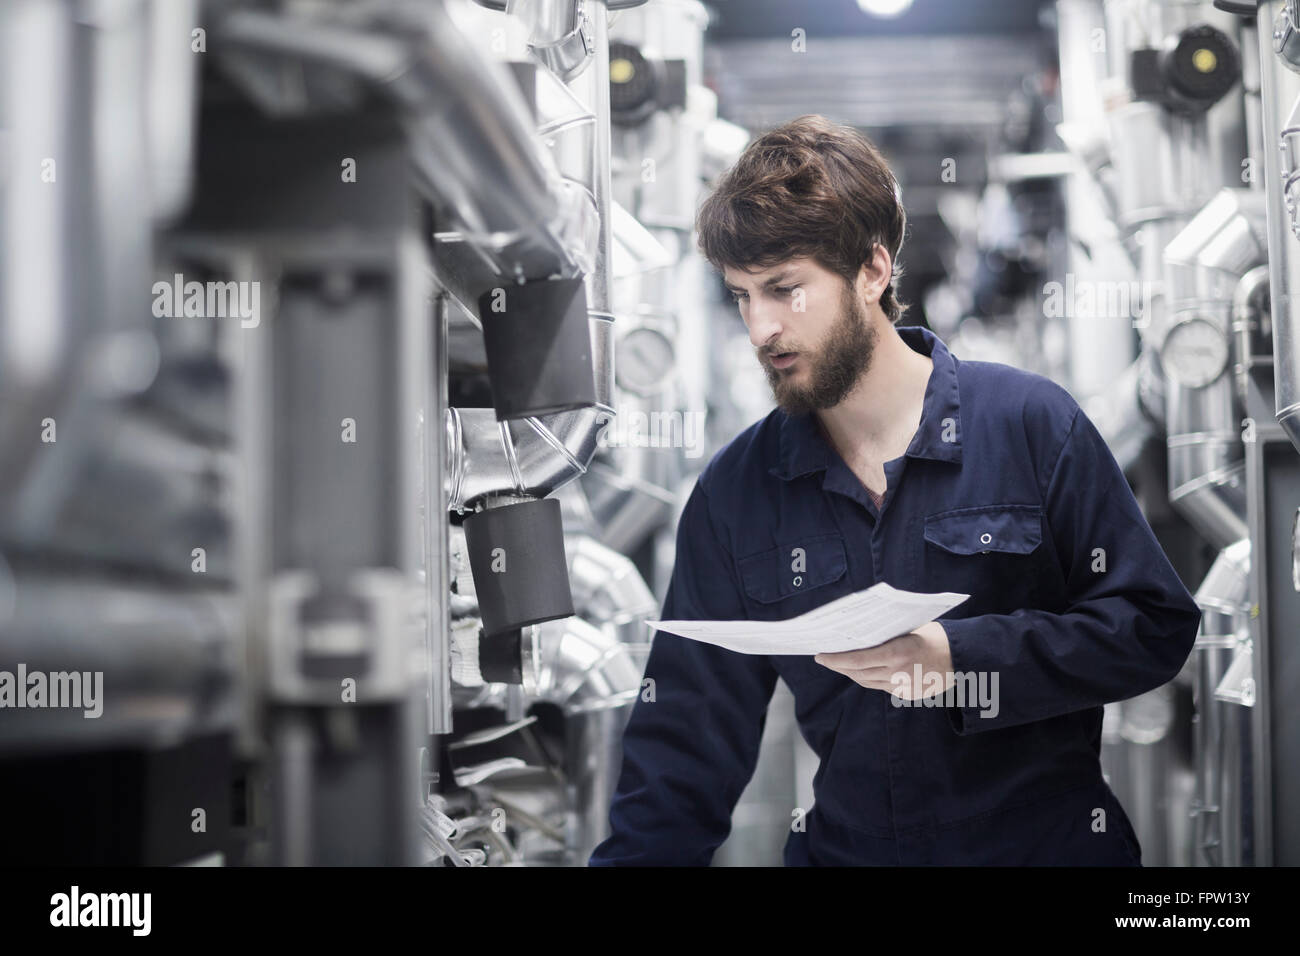 Young male engineer working in an industrial plant, Freiburg Im Breisgau, Baden-Württemberg, Germany - Stock Image